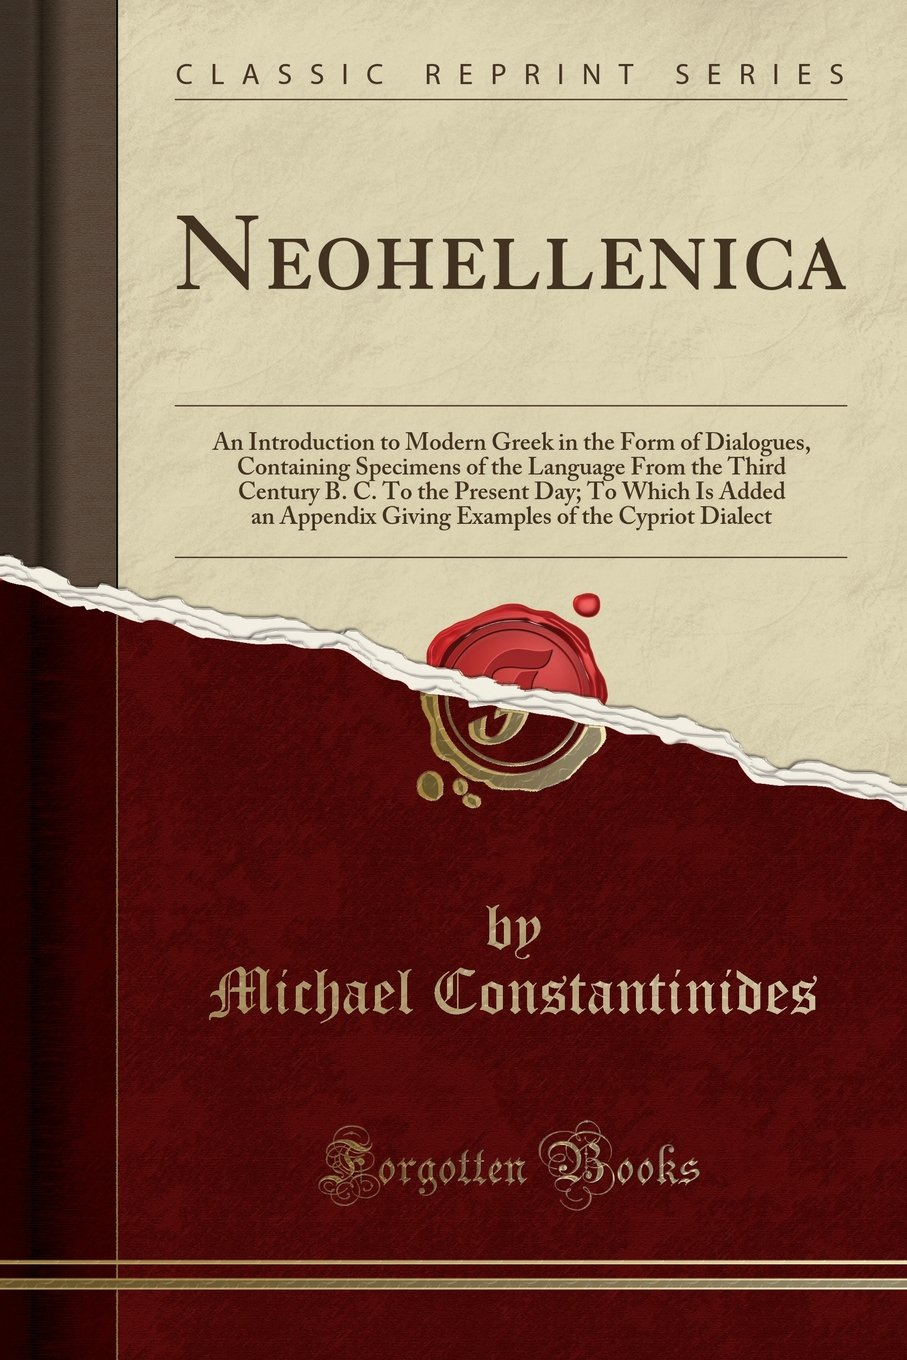 Neohellenica: An Introduction to Modern Greek in the Form of Dialogues, Containing Specimens of the Language From the Third Century B. C. To the ... of the Cypriot Dialect (Classic Reprint)